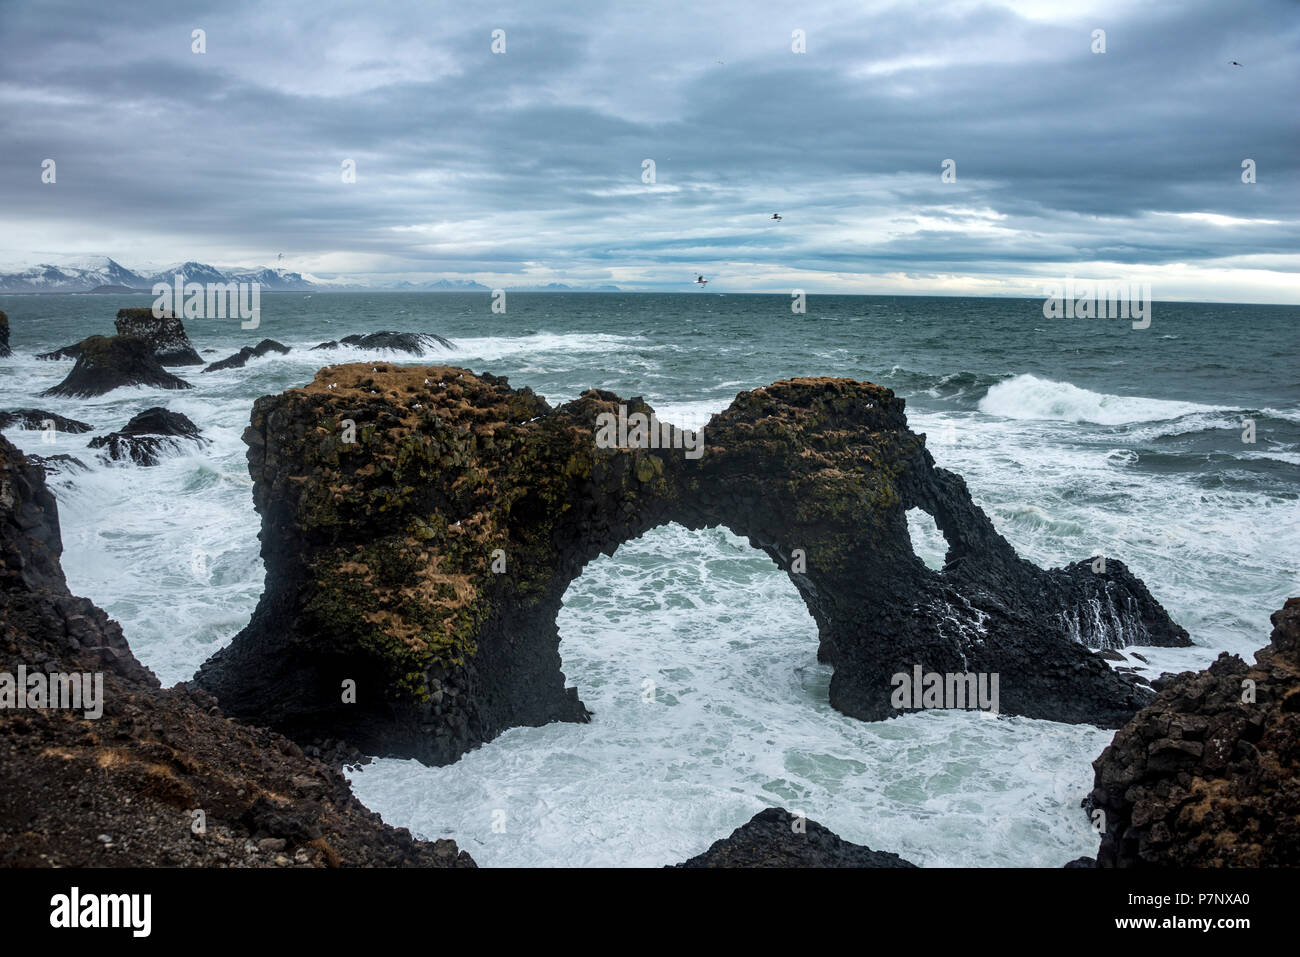 Gat Velcro, arch in the sea, waves at the sea, bad weather, West Iceland, Iceland - Stock Image